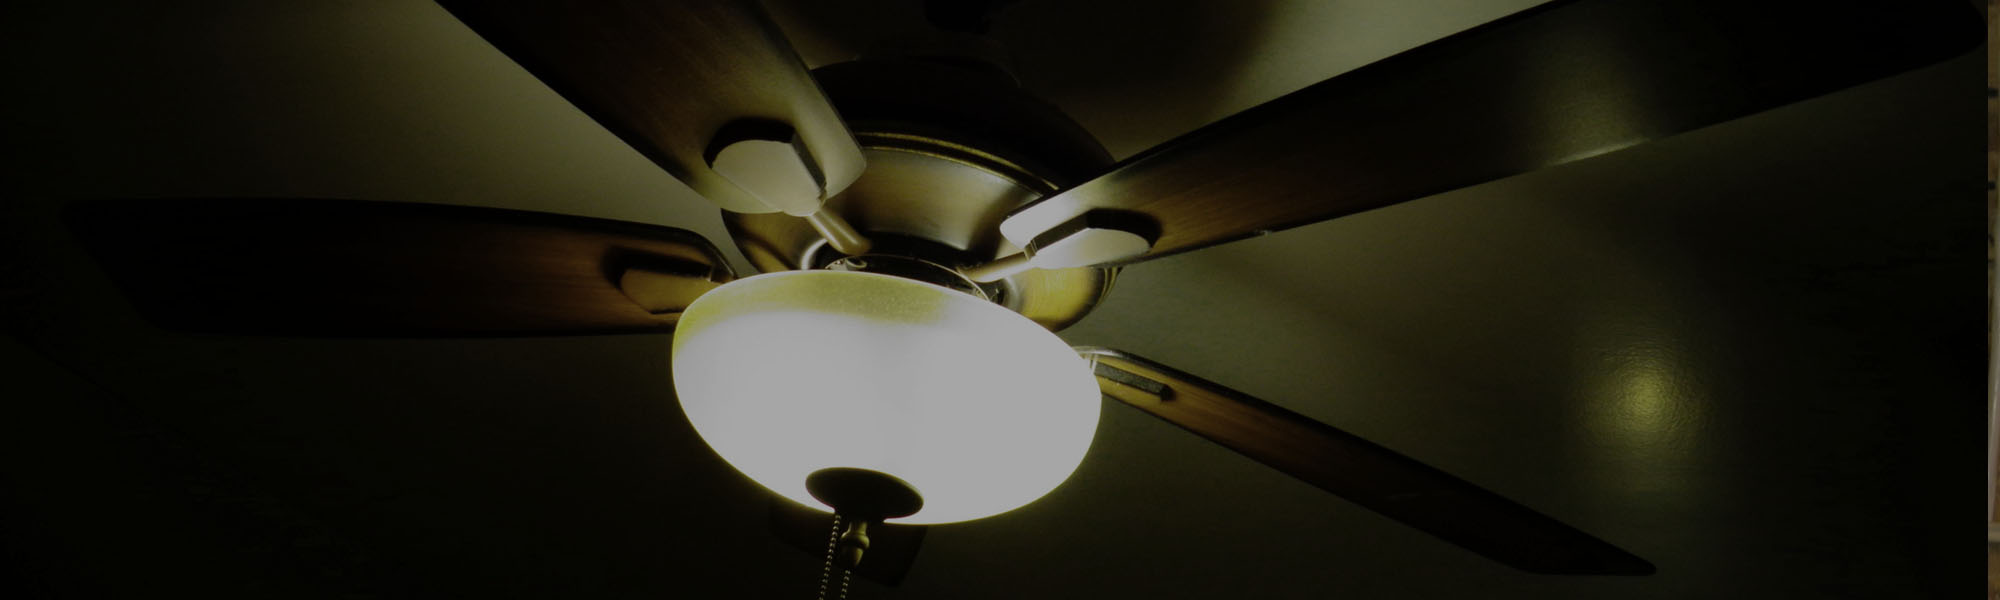 Ceiling Fan Installation Houston Texas Electrical Residential Google On 3 Wires And Wiring A Without Light Contractors Llc